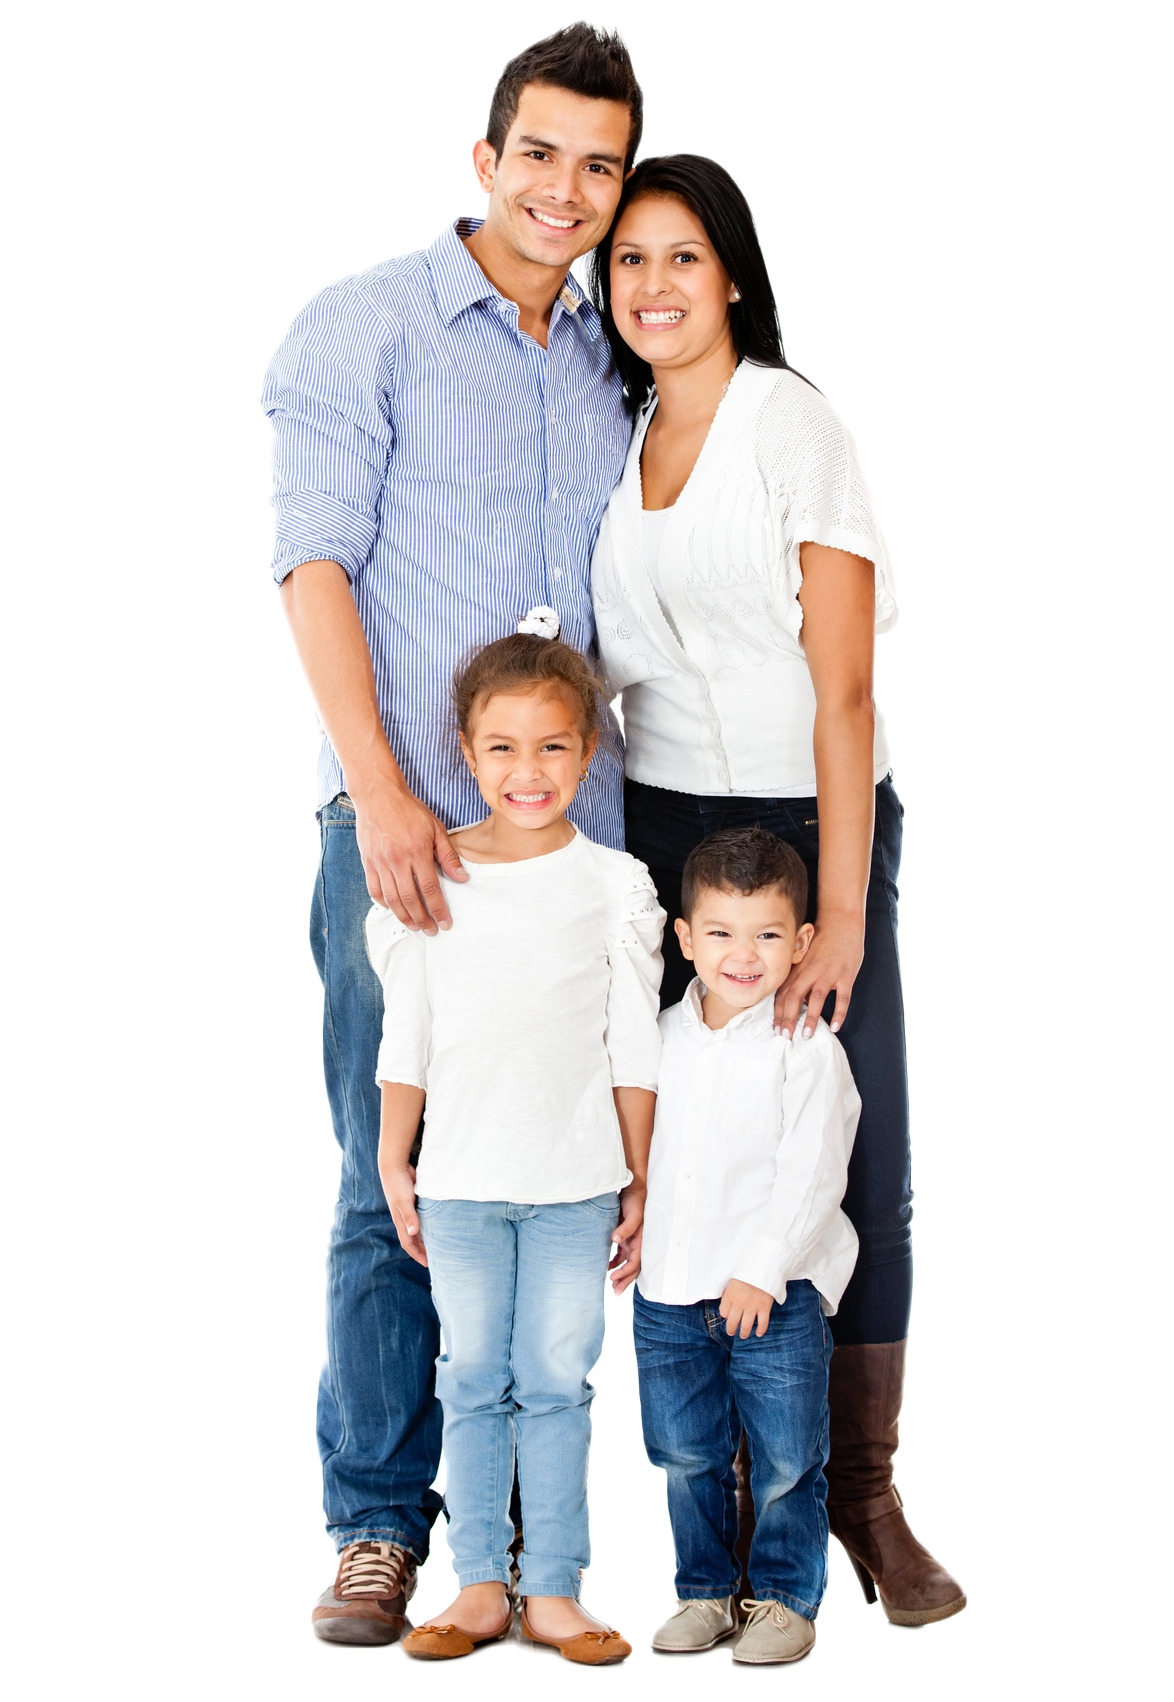 Family Png image #40056